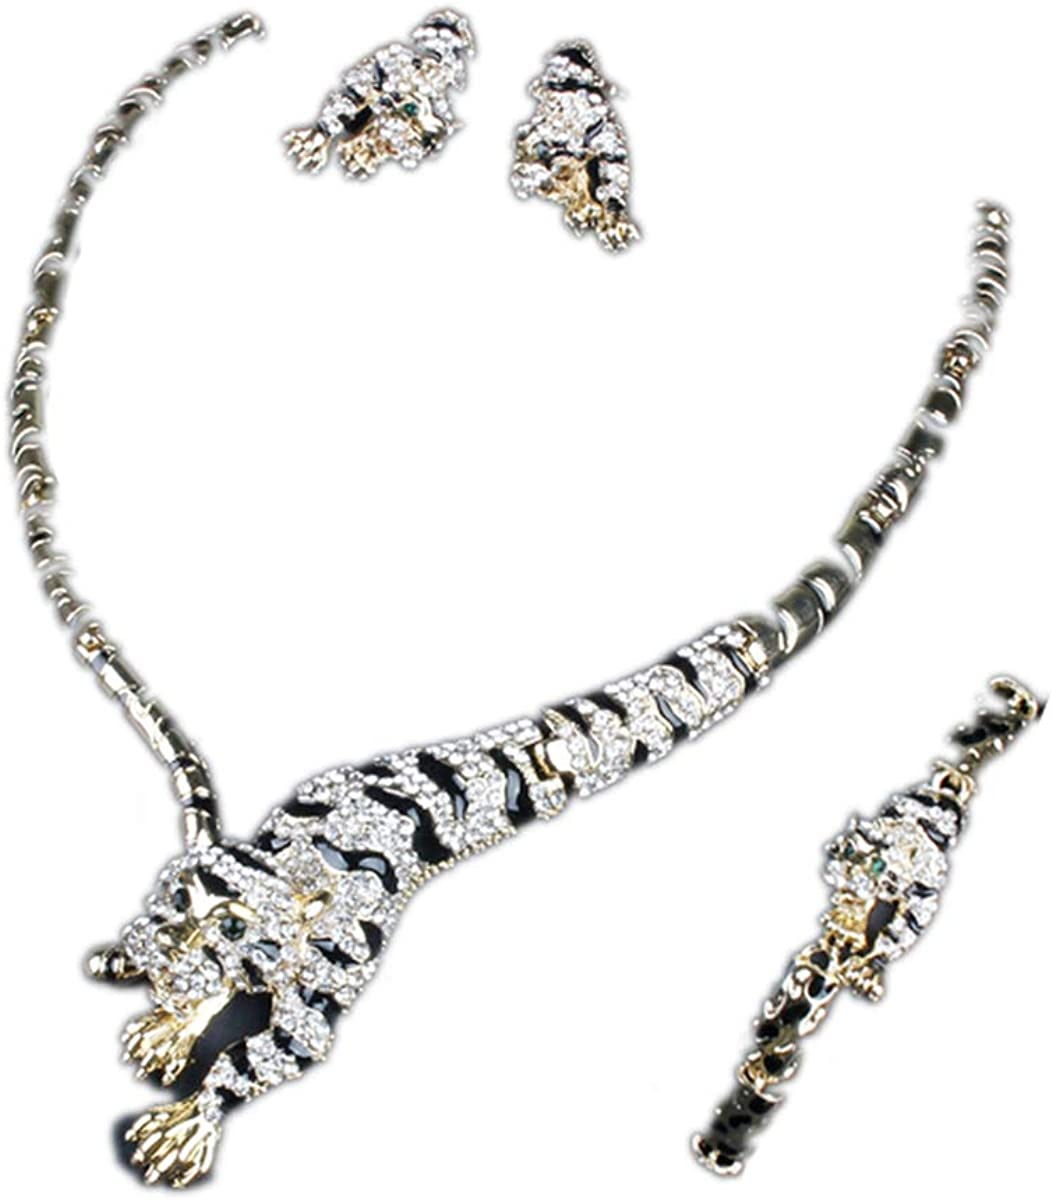 ENUUNO Prom Gothic Costume Jewelry for Women Gold Leopard Statement Choker Necklace and Earrings Bracelets Bridal Jewelry Set for Wedding